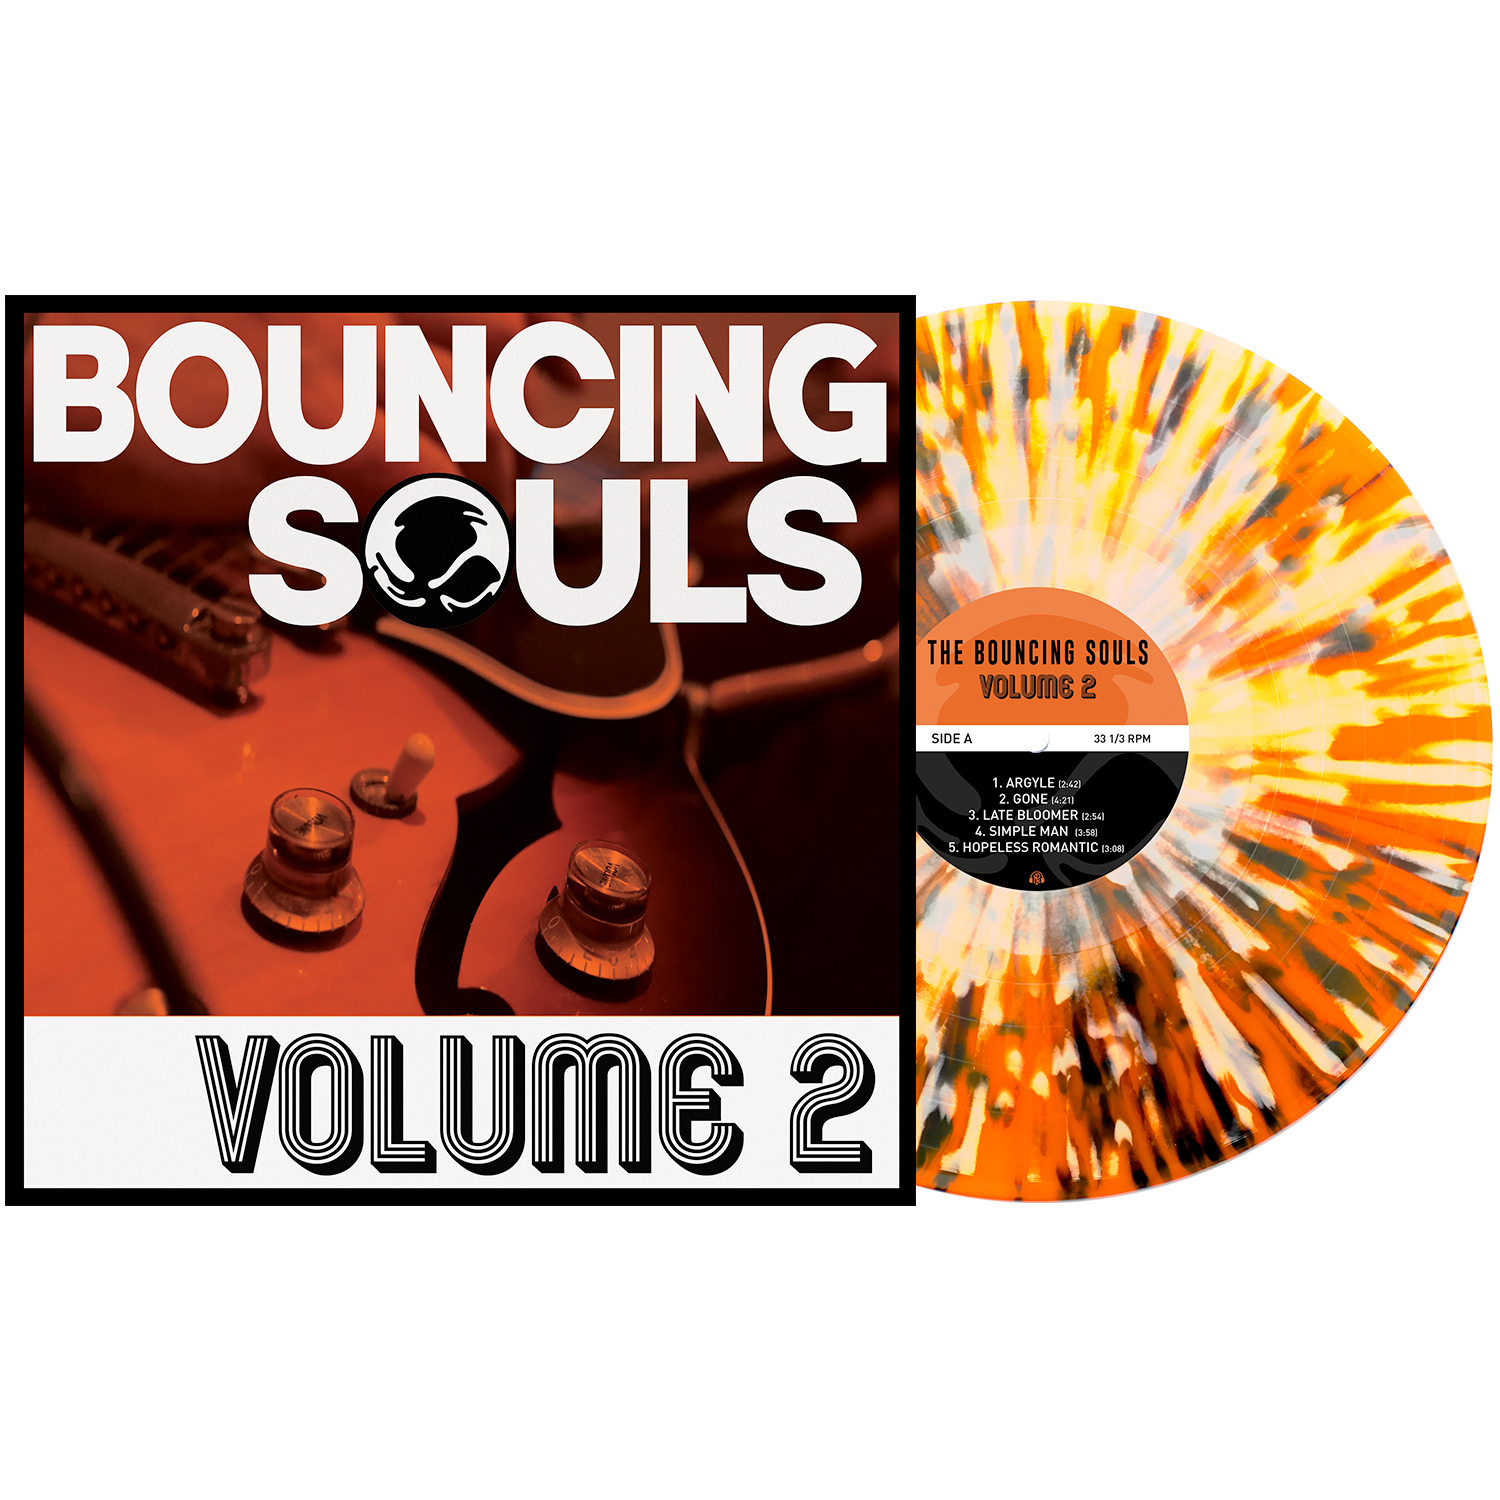 The Bouncing Souls 'Volume 2' - Various LP Orange Crush w/ Black & White Splatter